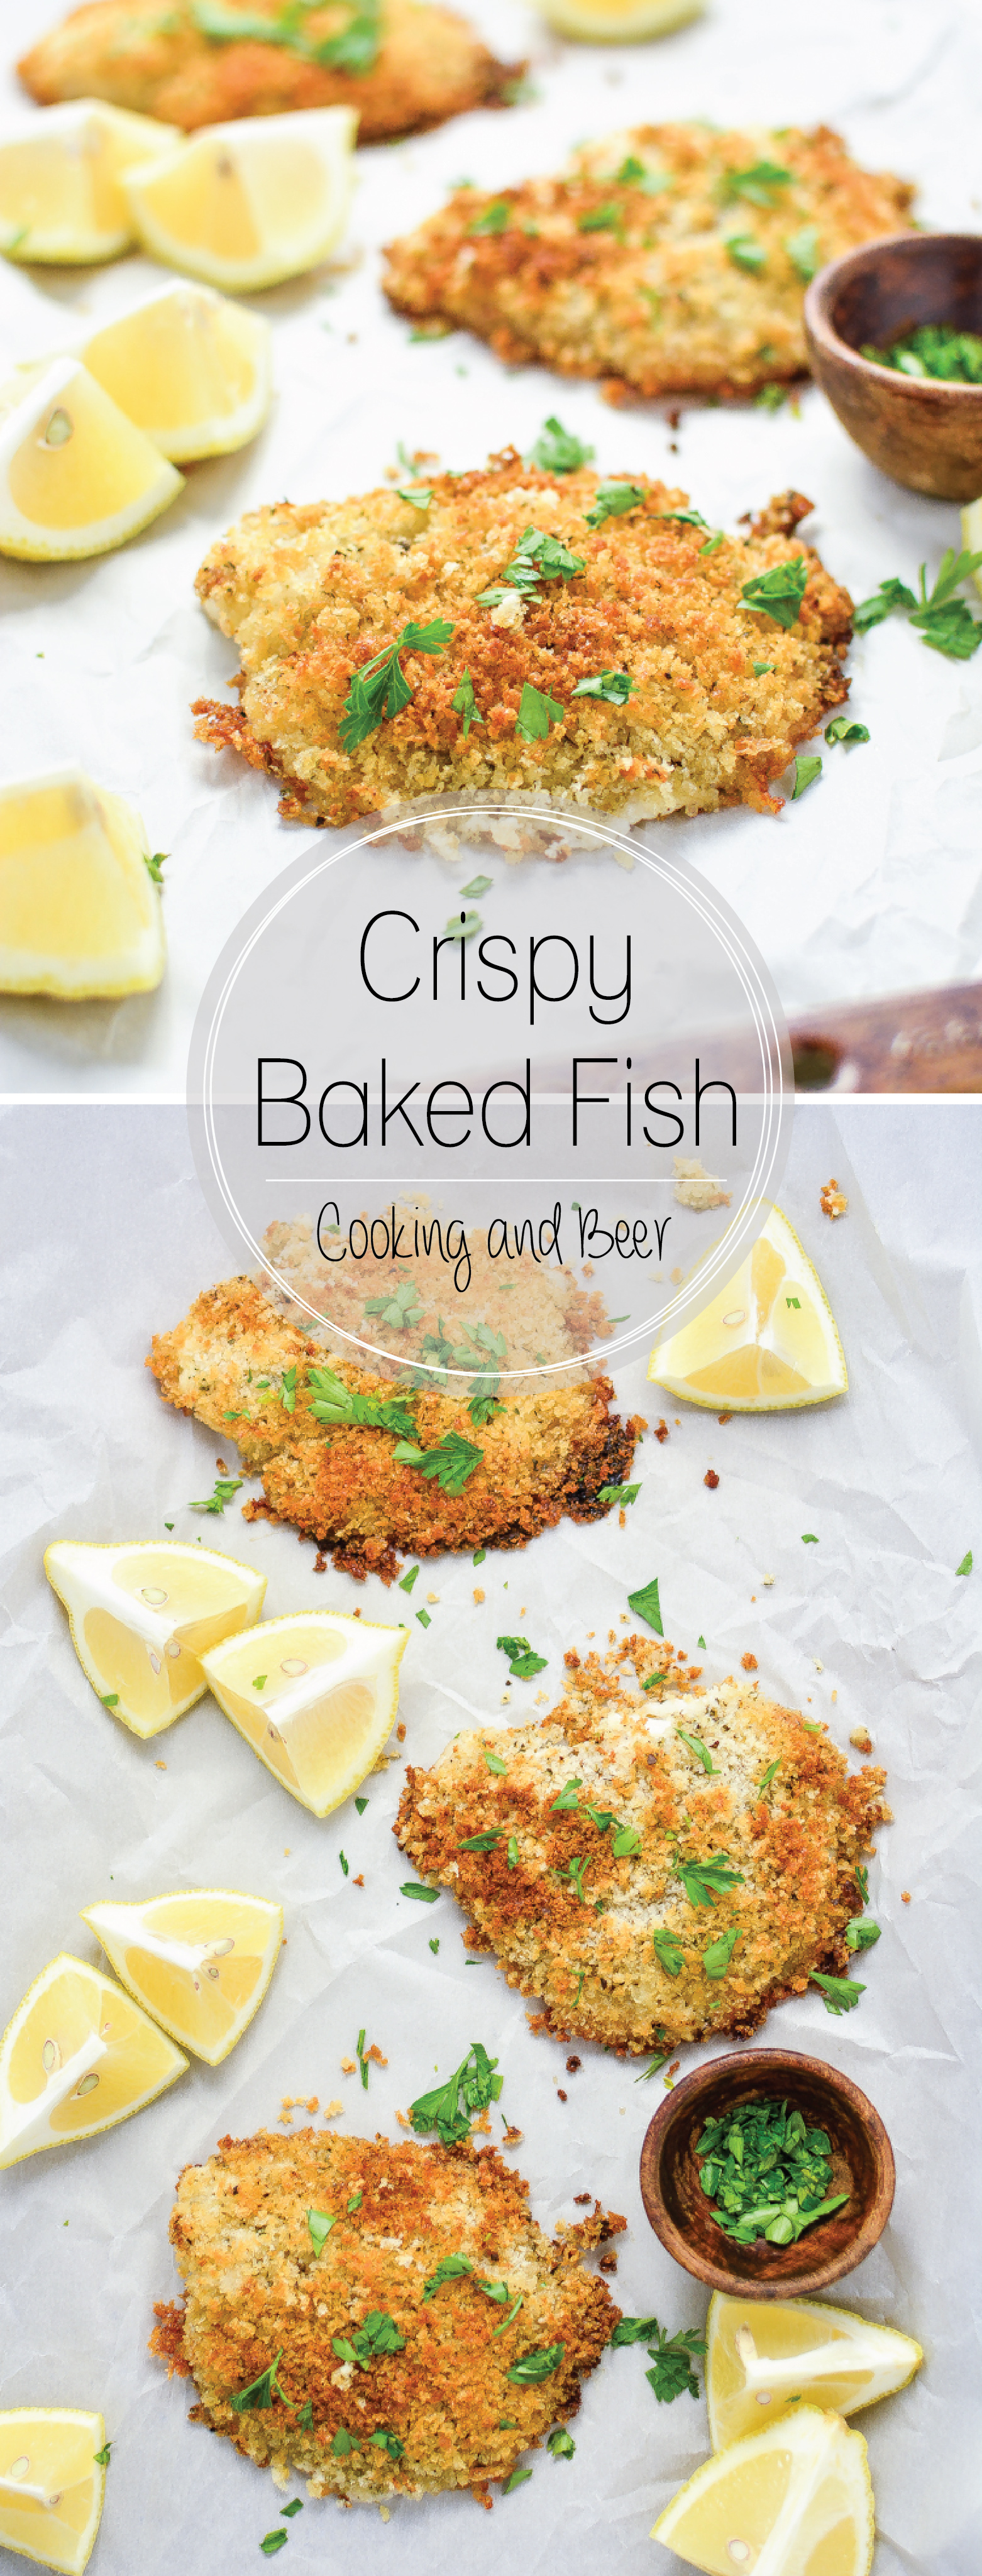 30 Minute Crispy Baked Fishcooking And Beer